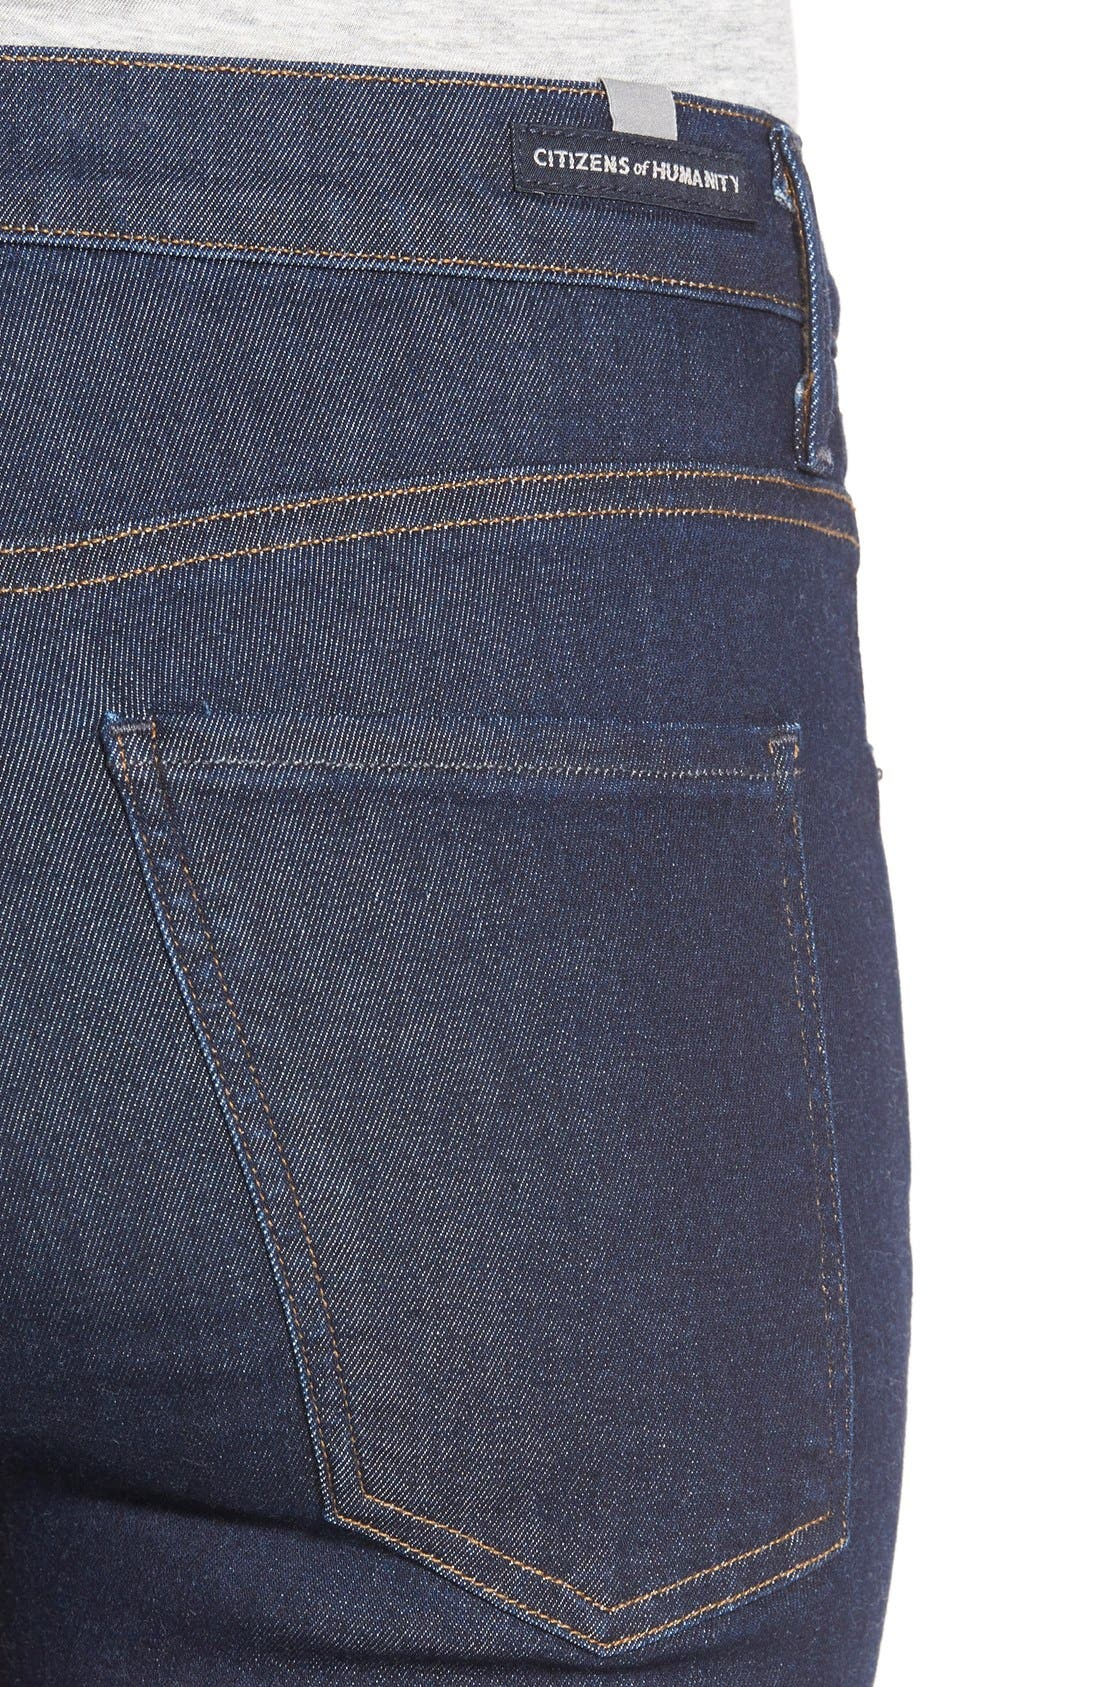 'Fleetwood' High Rise Flare Jeans,                             Alternate thumbnail 4, color,                             Ozone Rinse